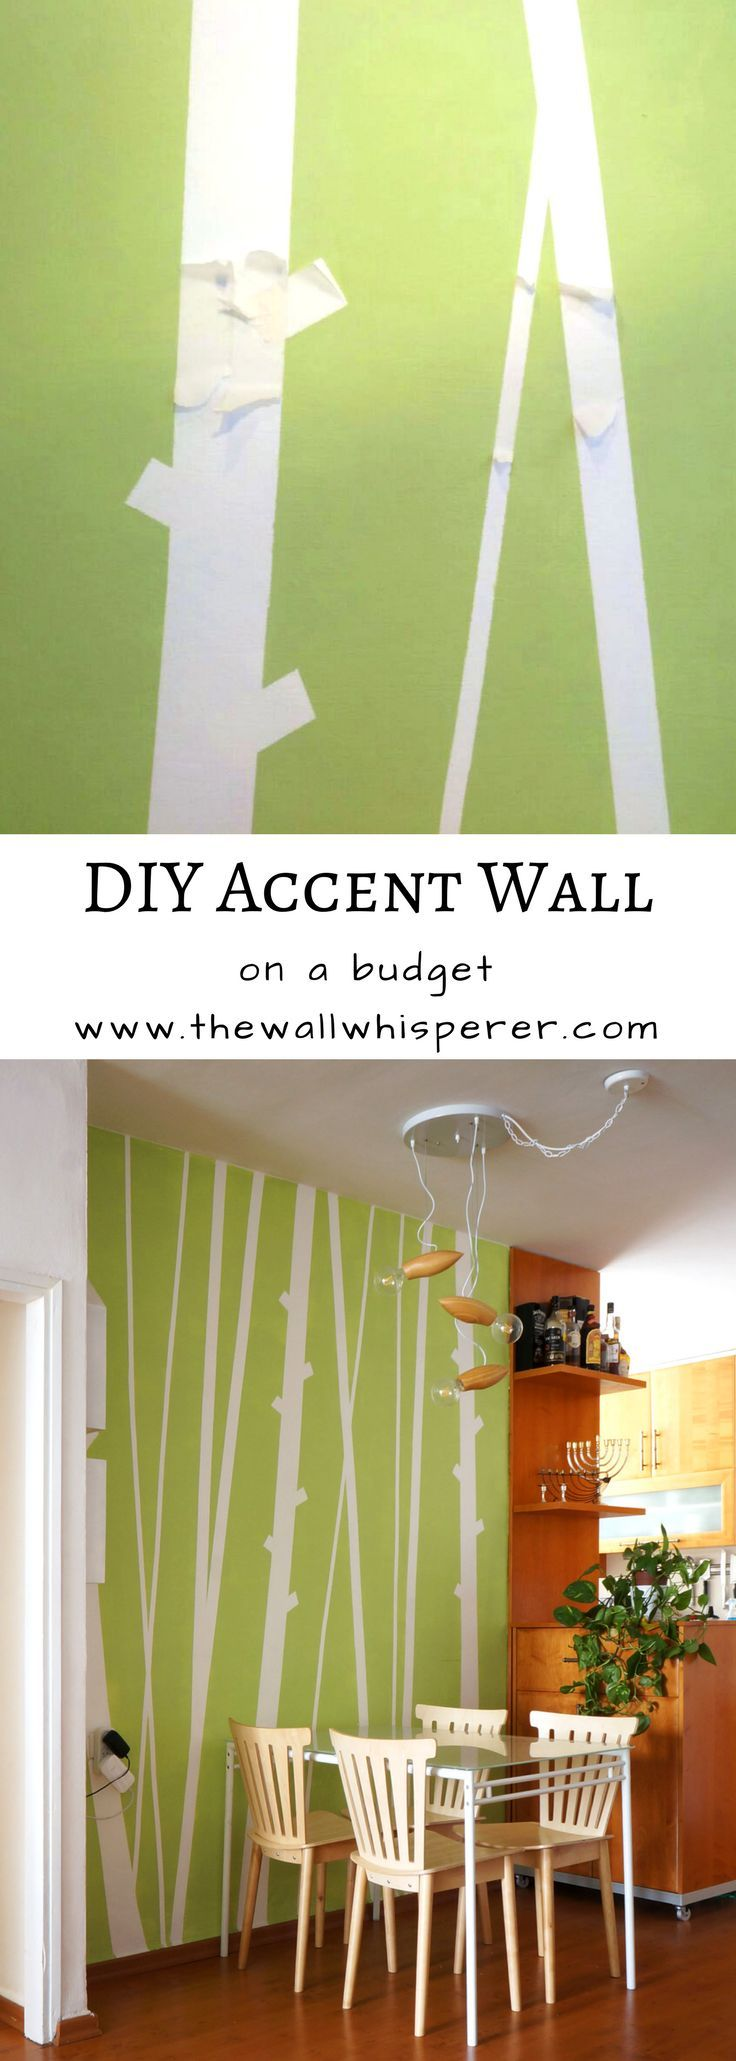 Bamboo Accent Wall Diy Faux Wallpaper Home Decor Project